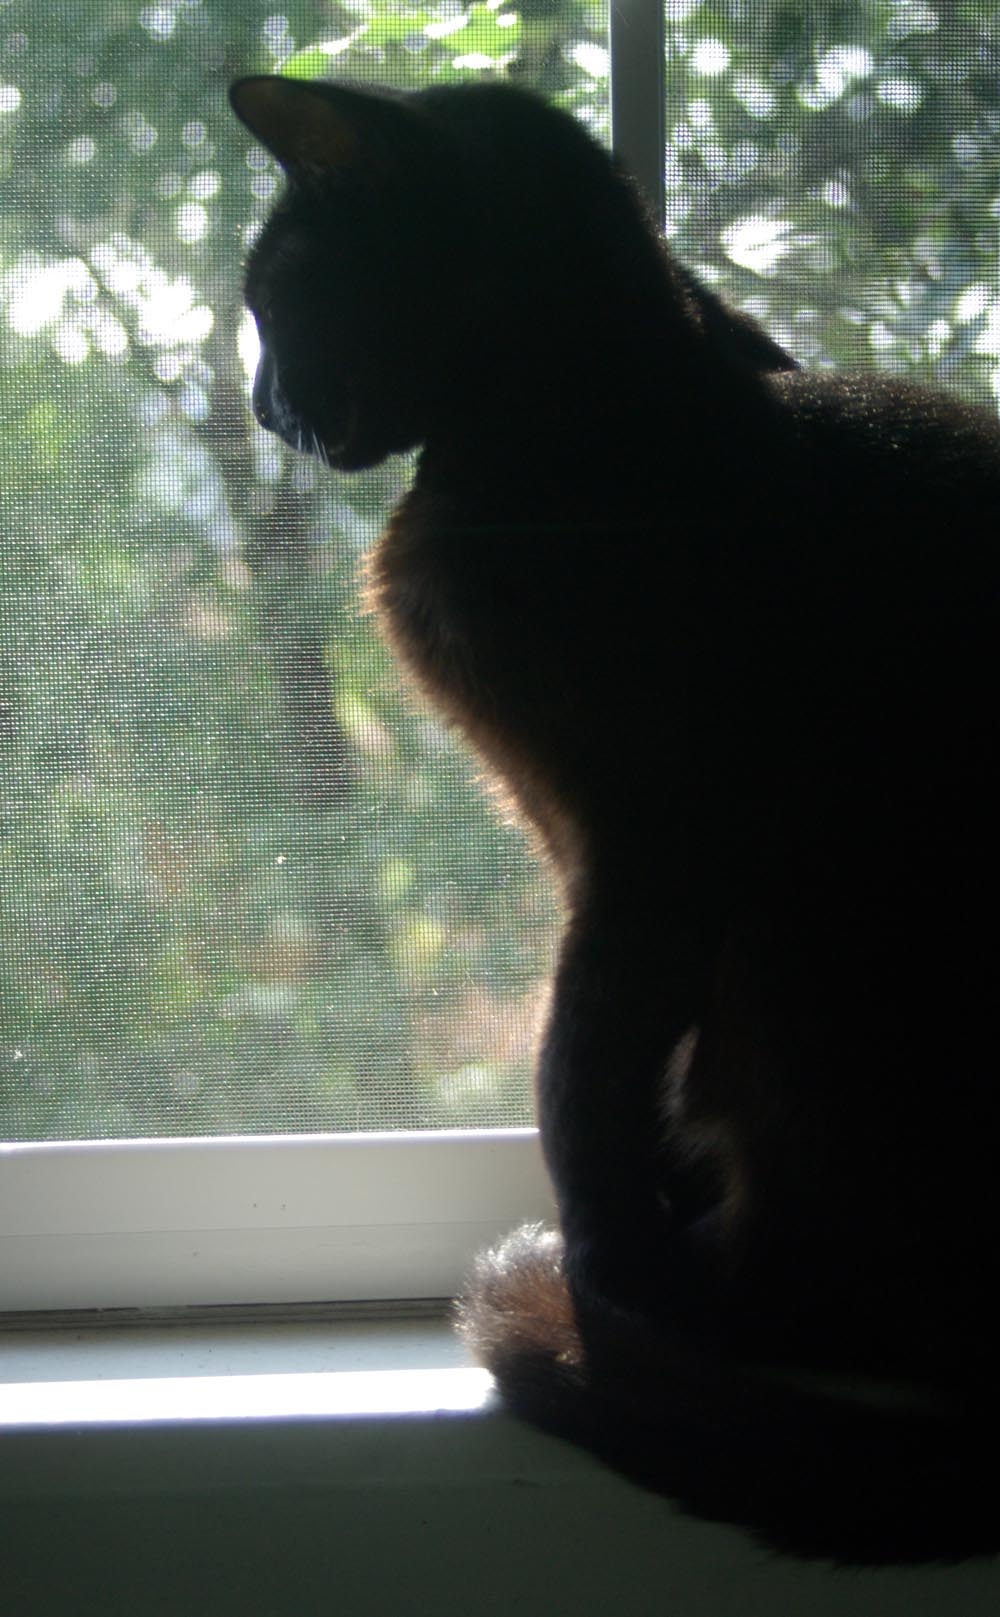 black cat silhouette in window